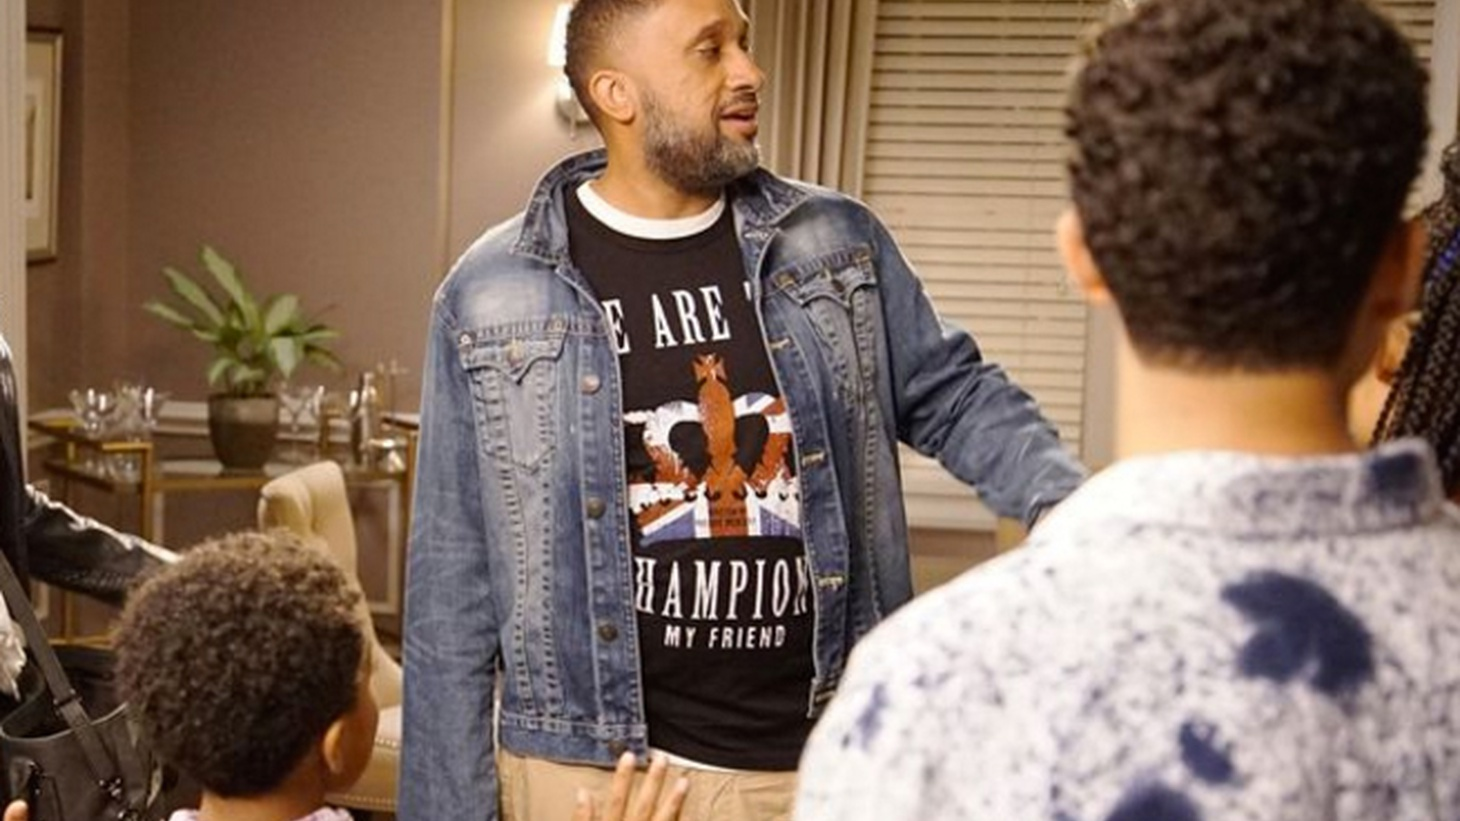 Writer-producer Kenya Barris tells us how he runs his writers room on his ABC show Black-ish, and what led him to write a much talked about recent episode about police brutality.